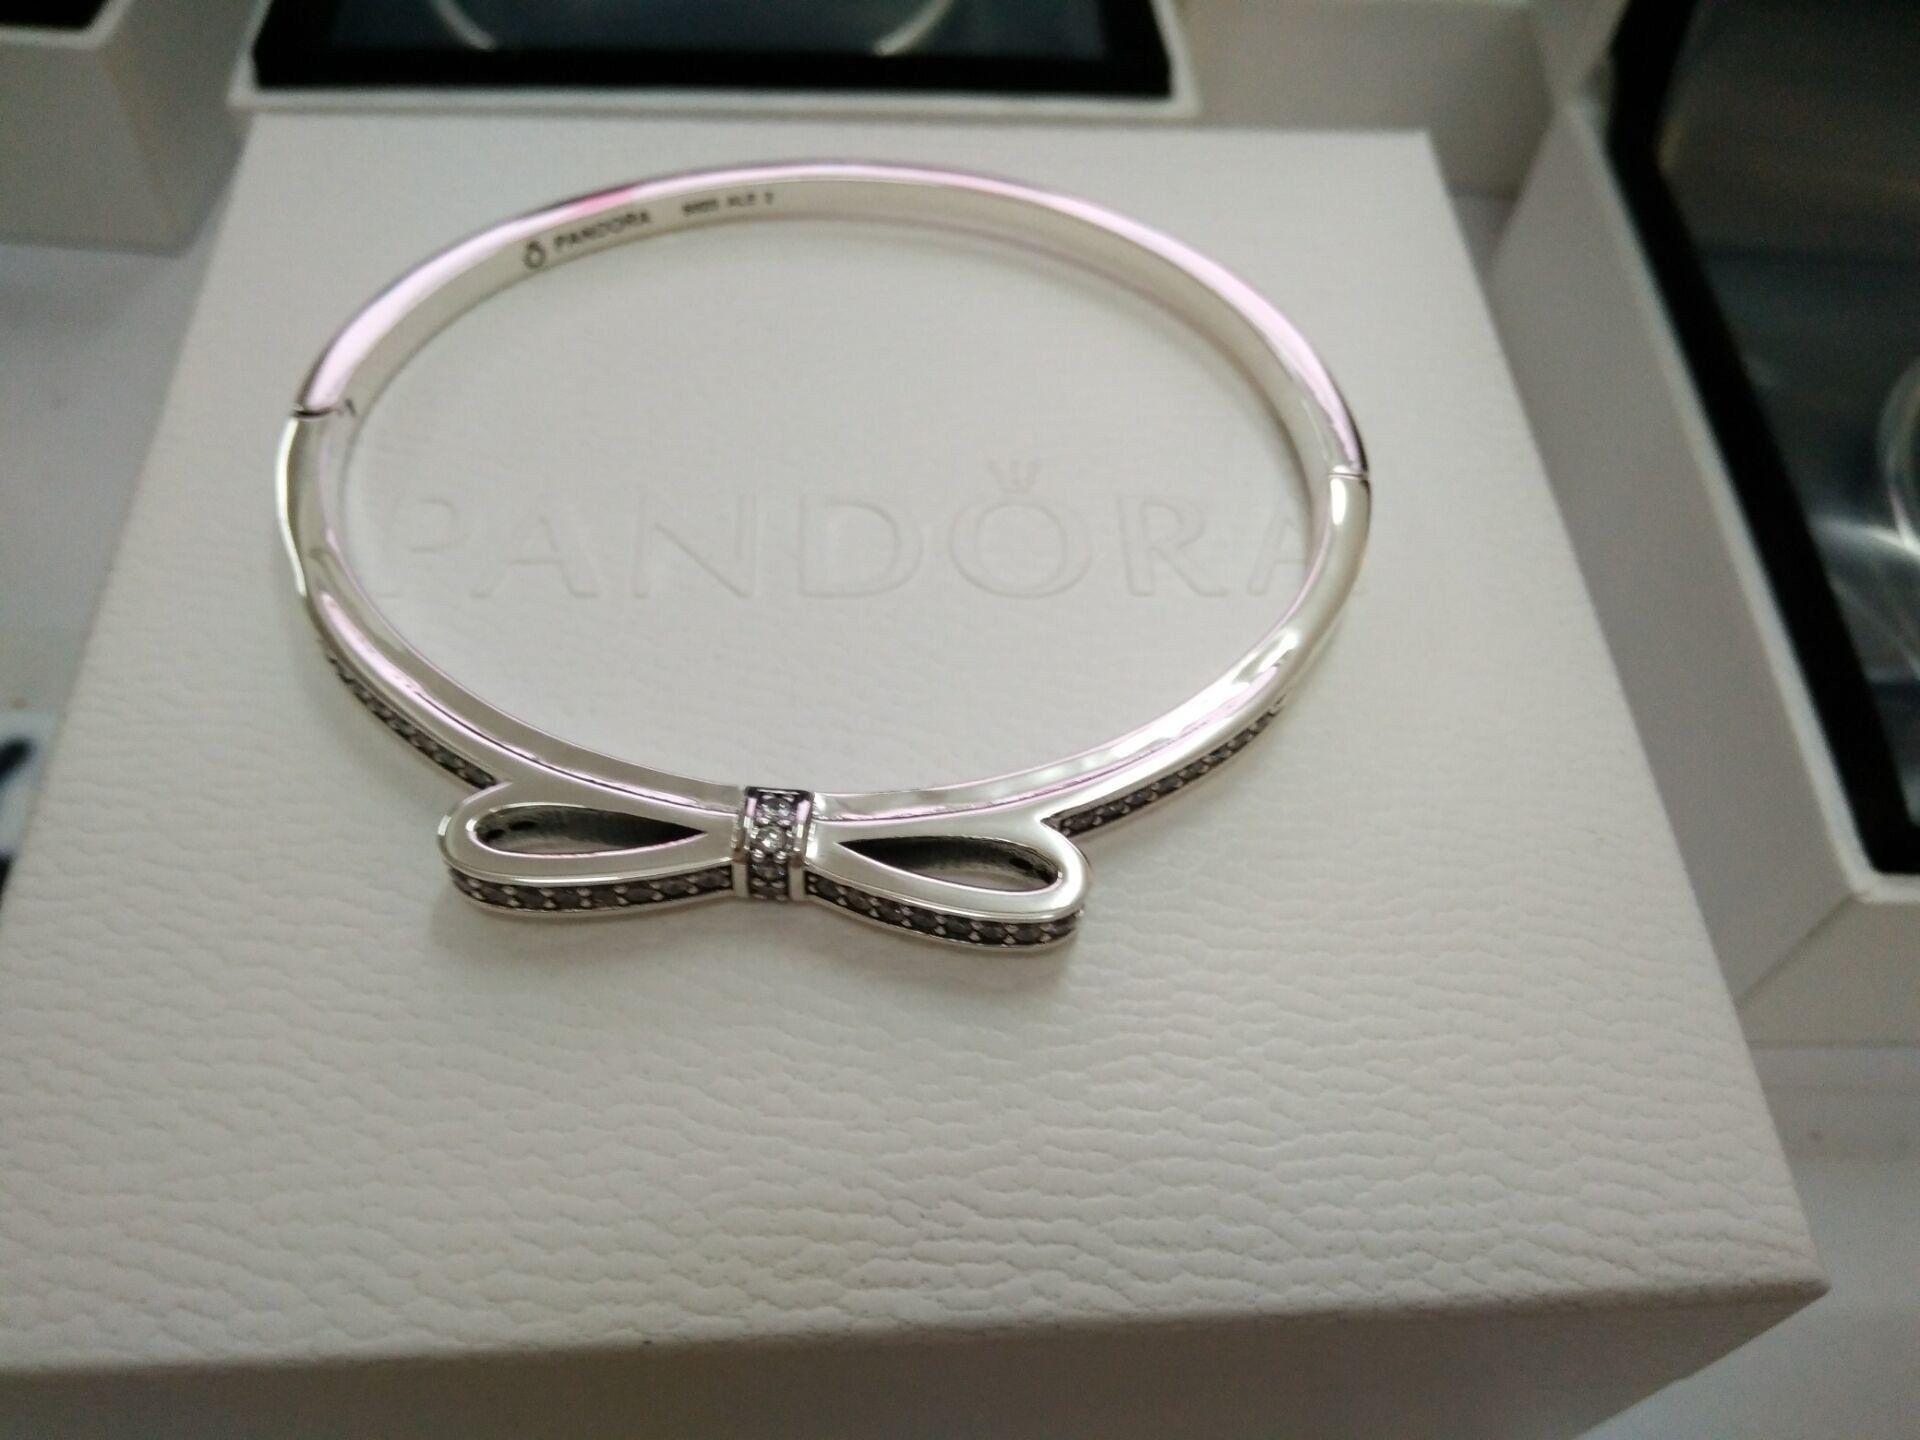 dd16ca17c ... ring Pandora butterfly tie bangle bracelet pure 925 sterling silver  Comes with pandora gift box how to .